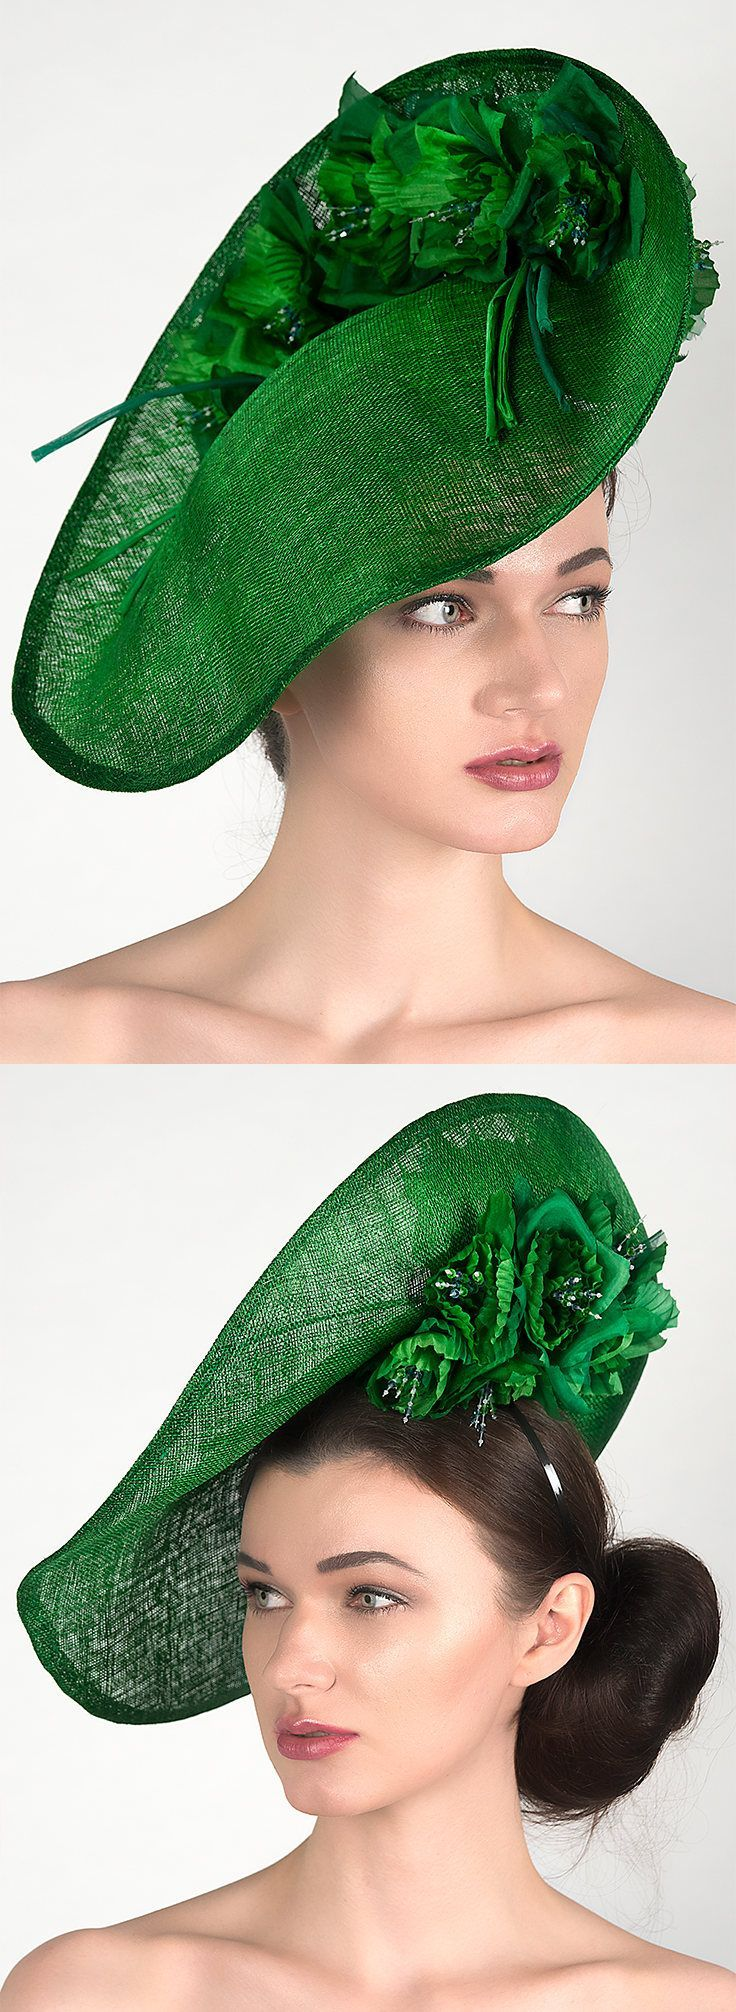 Emerald Green Wavy Slice Saucer Silk Floral Headpiece Fern Hat for the Races Royal Ascot Melbourne Cup Kentucky Derby Hatinator Bright #fascinatorstyles